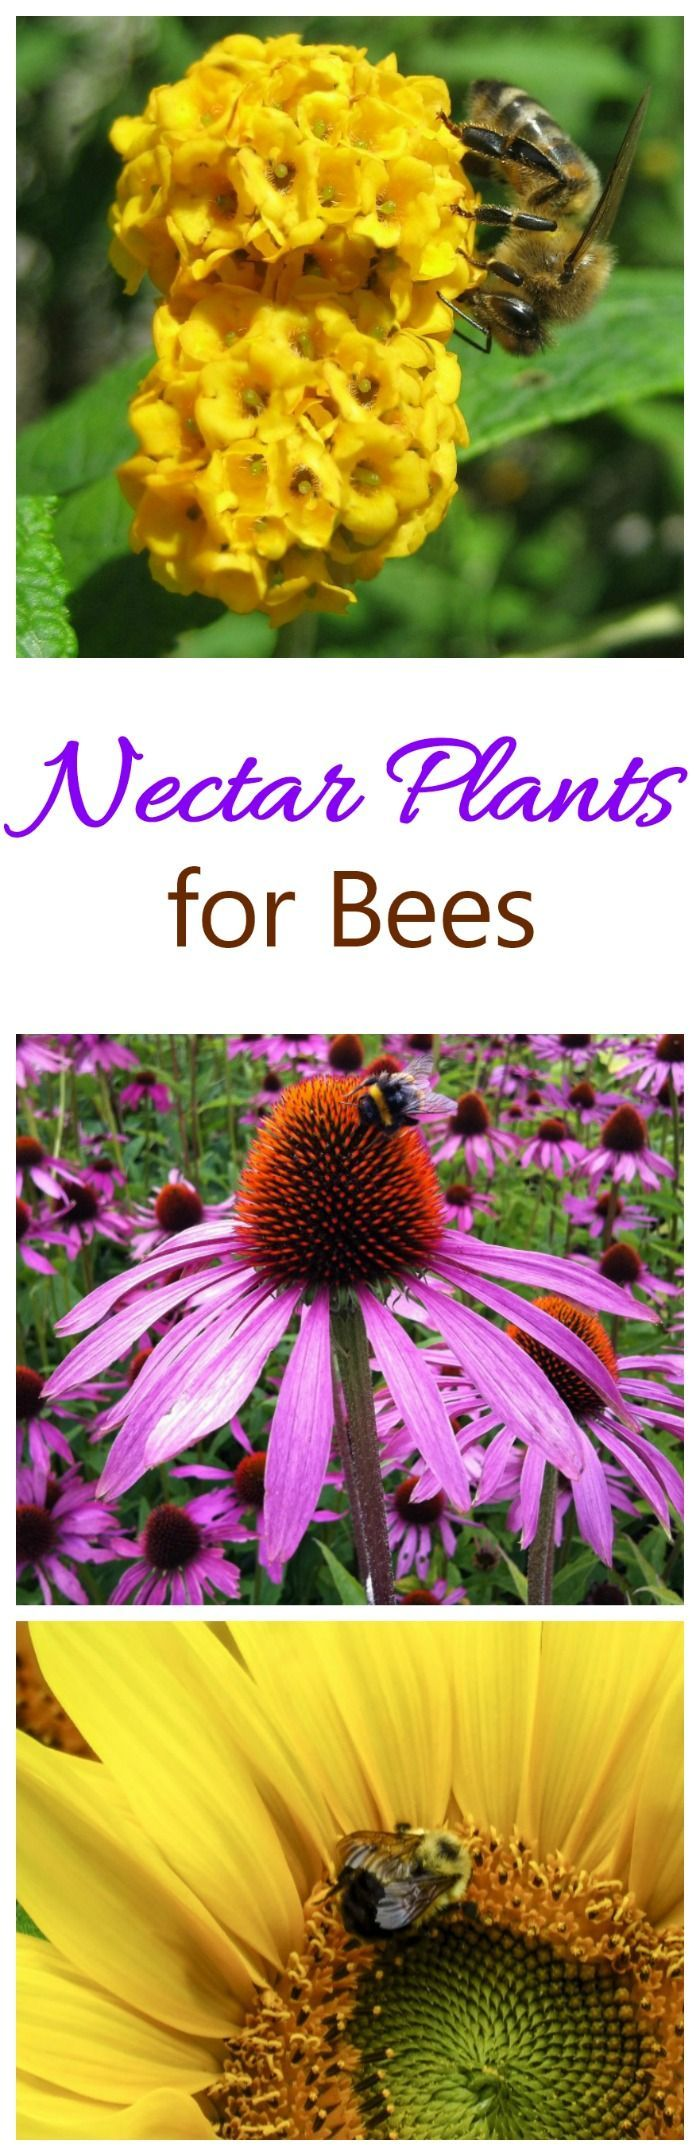 Nectar Plants that attract bees